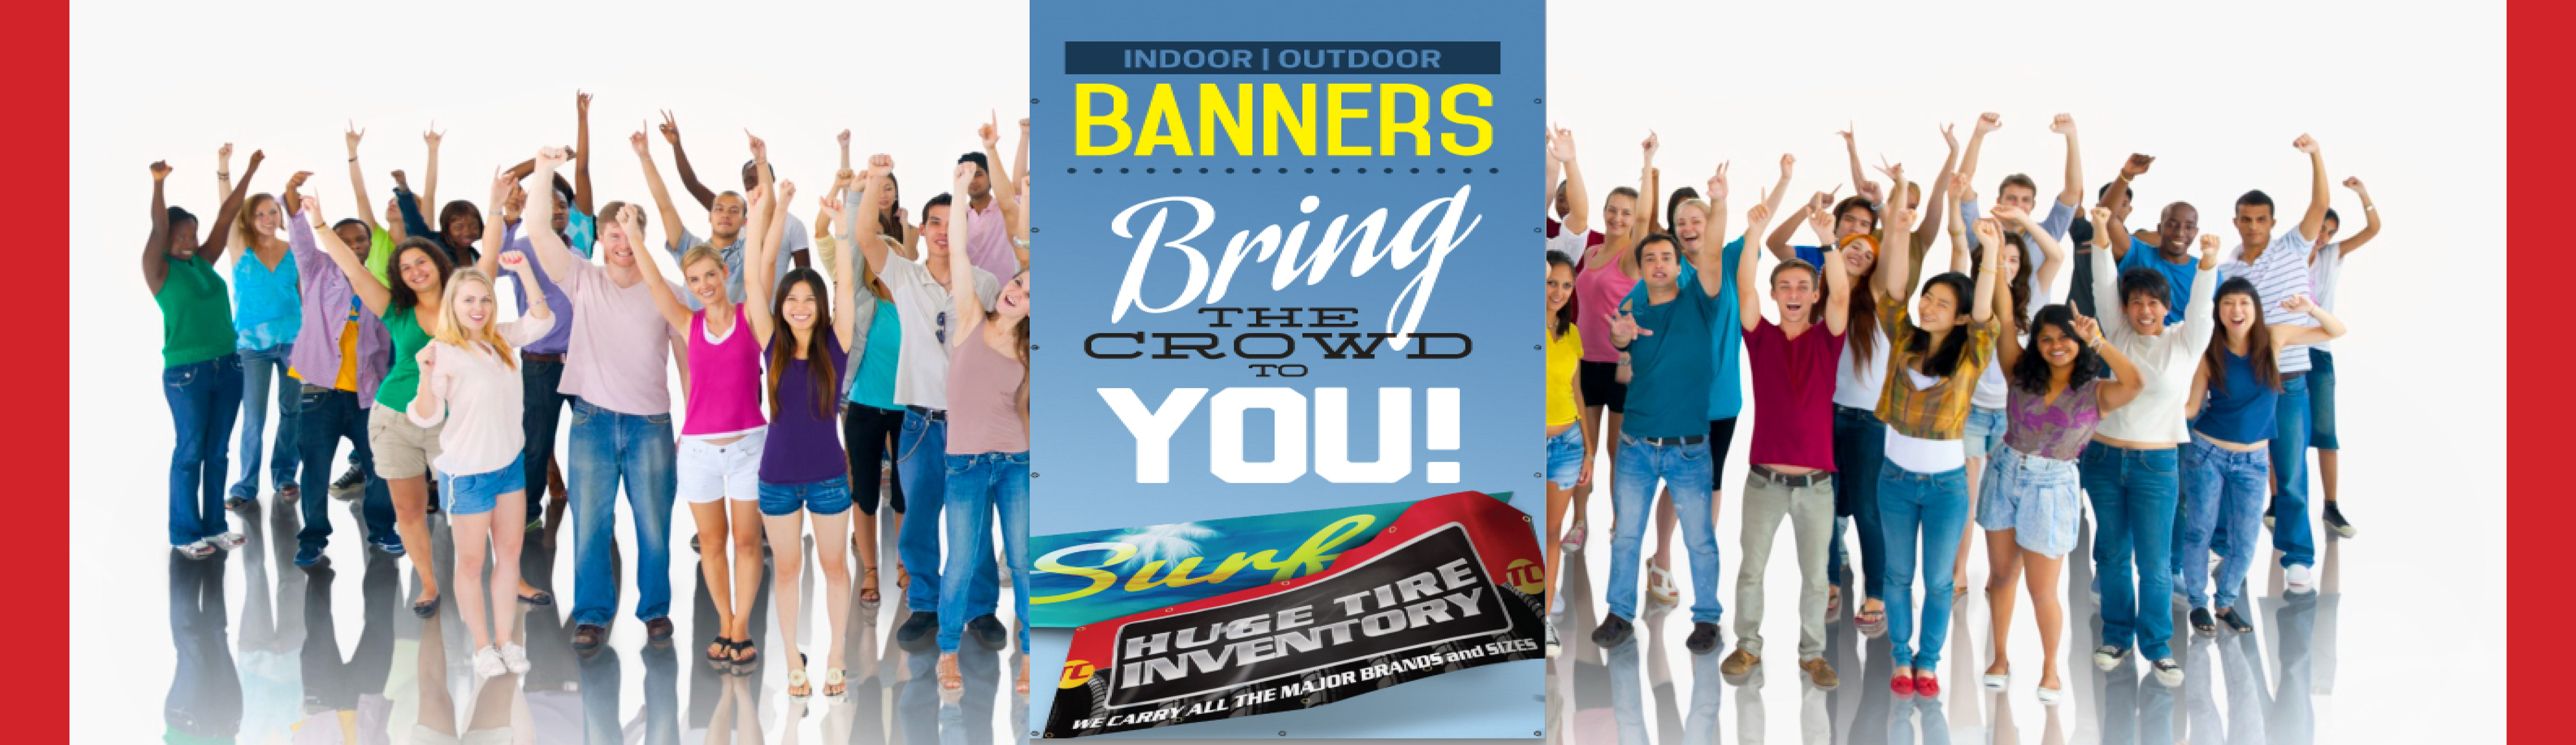 Banners - Bring The Crowd To You!